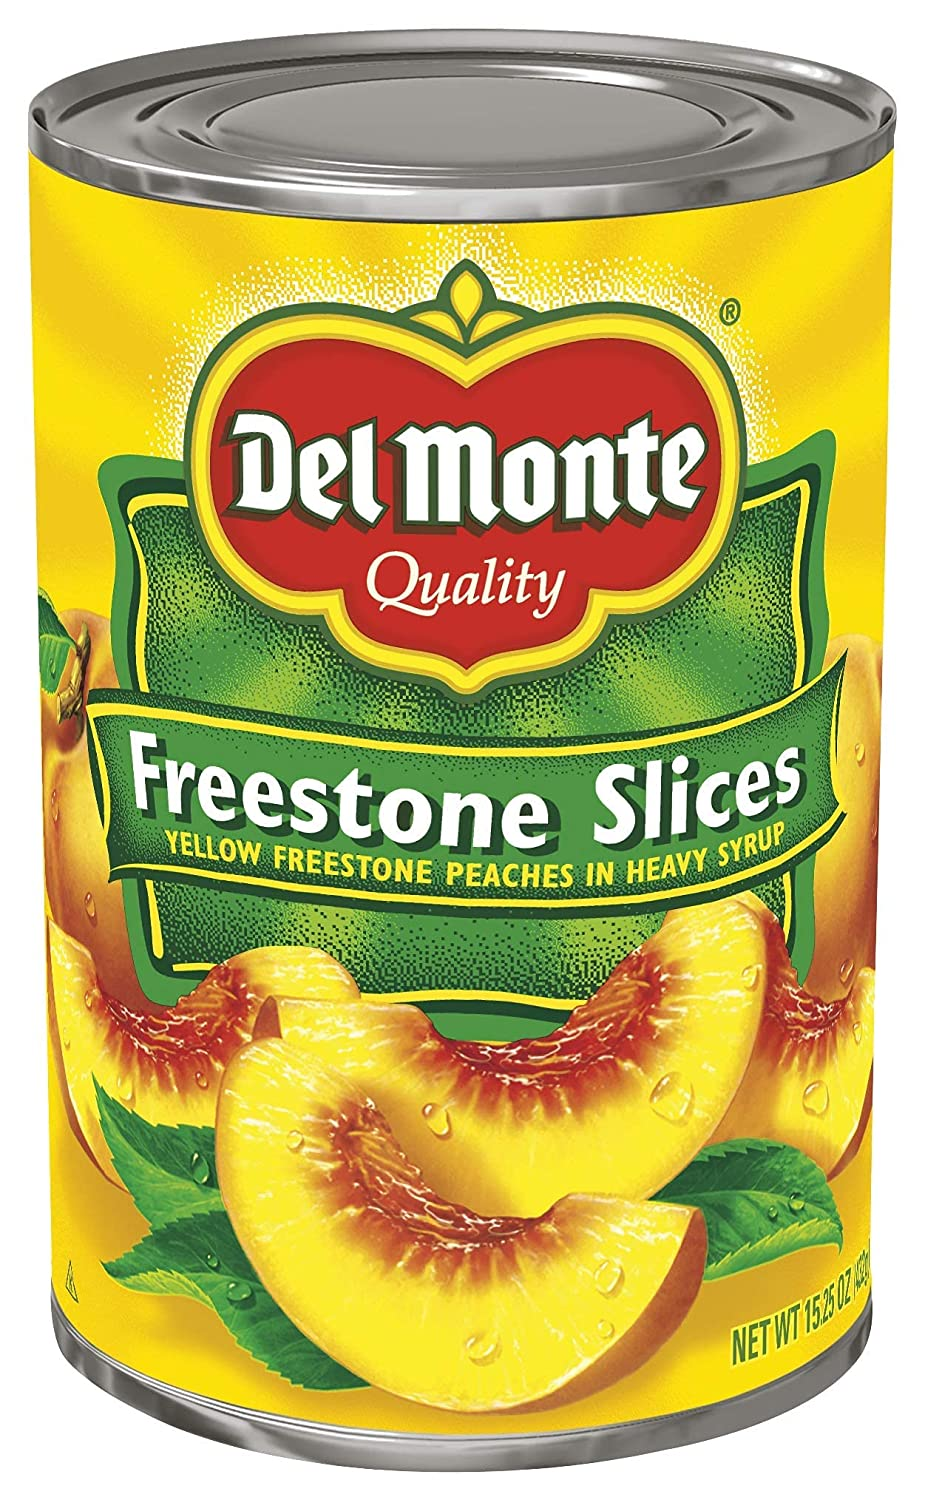 Del Monte Canned Max 63% OFF Sliced Peaches in Syrup Pac Japan Maker New Ounce 15.25 Heavy